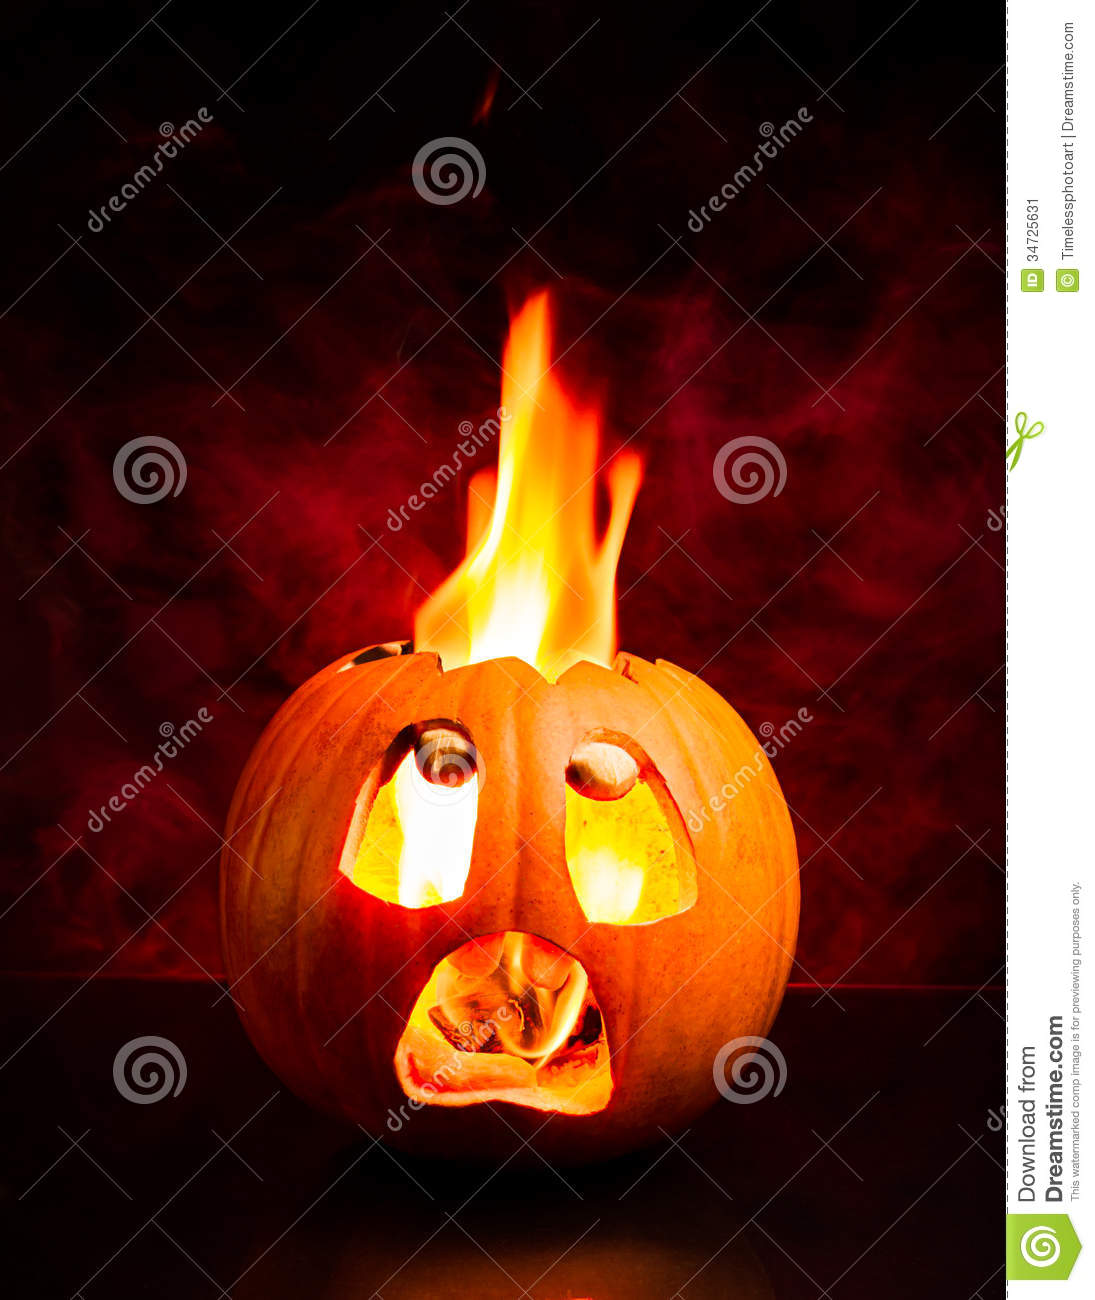 halloween scared pumpkin with flames and red smoke. stock image